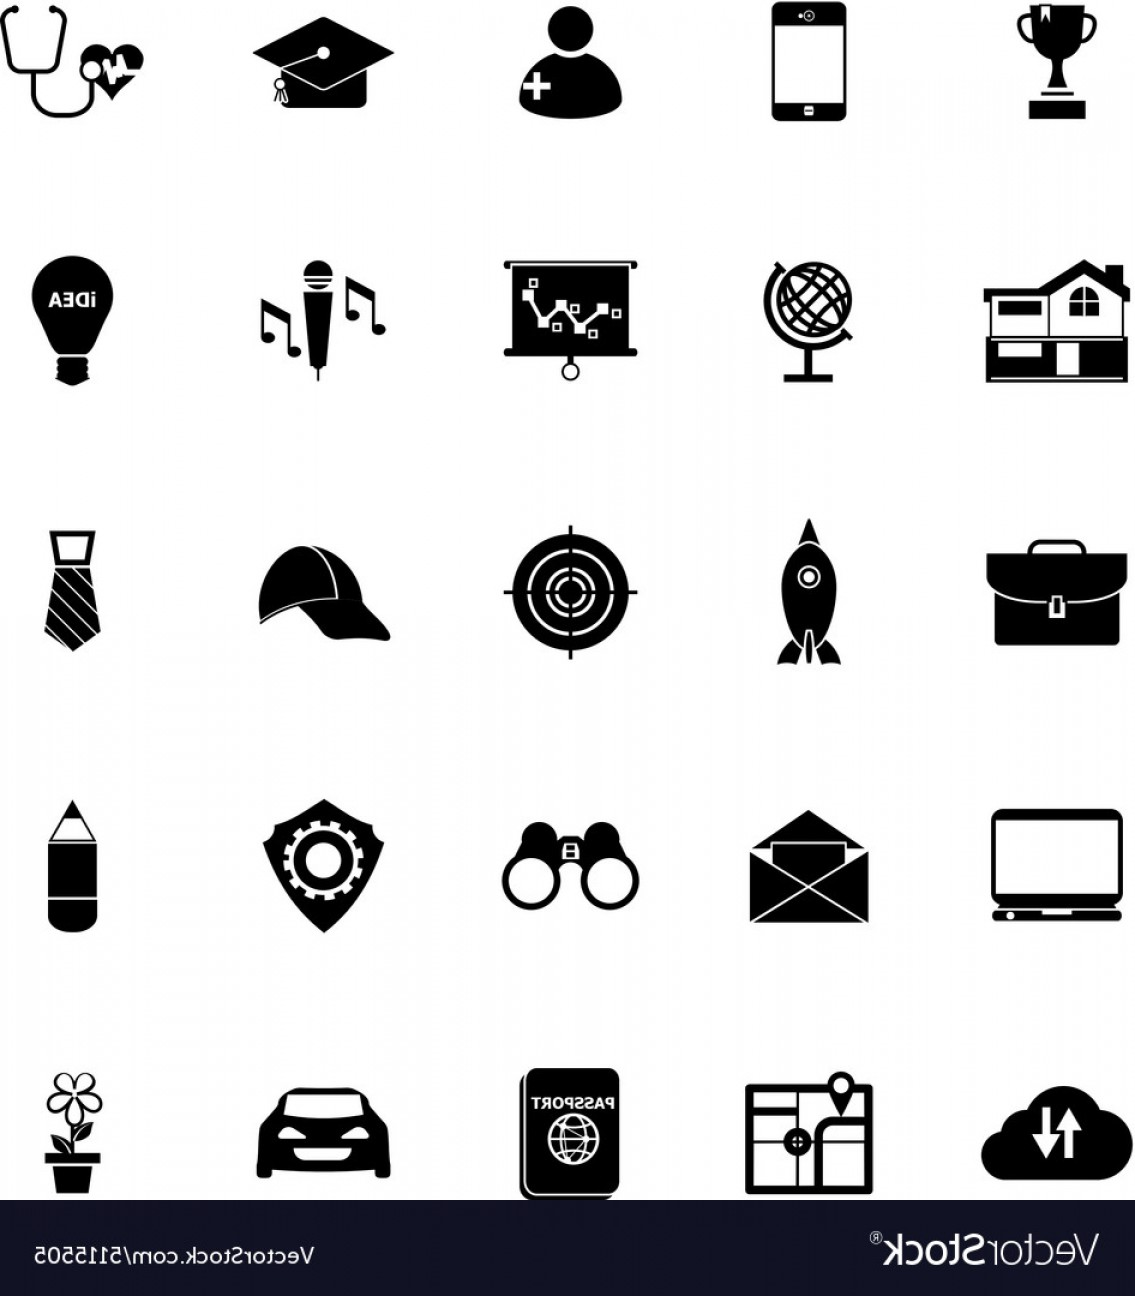 Vectors Job Description: Job Description Icons On White Background Vector